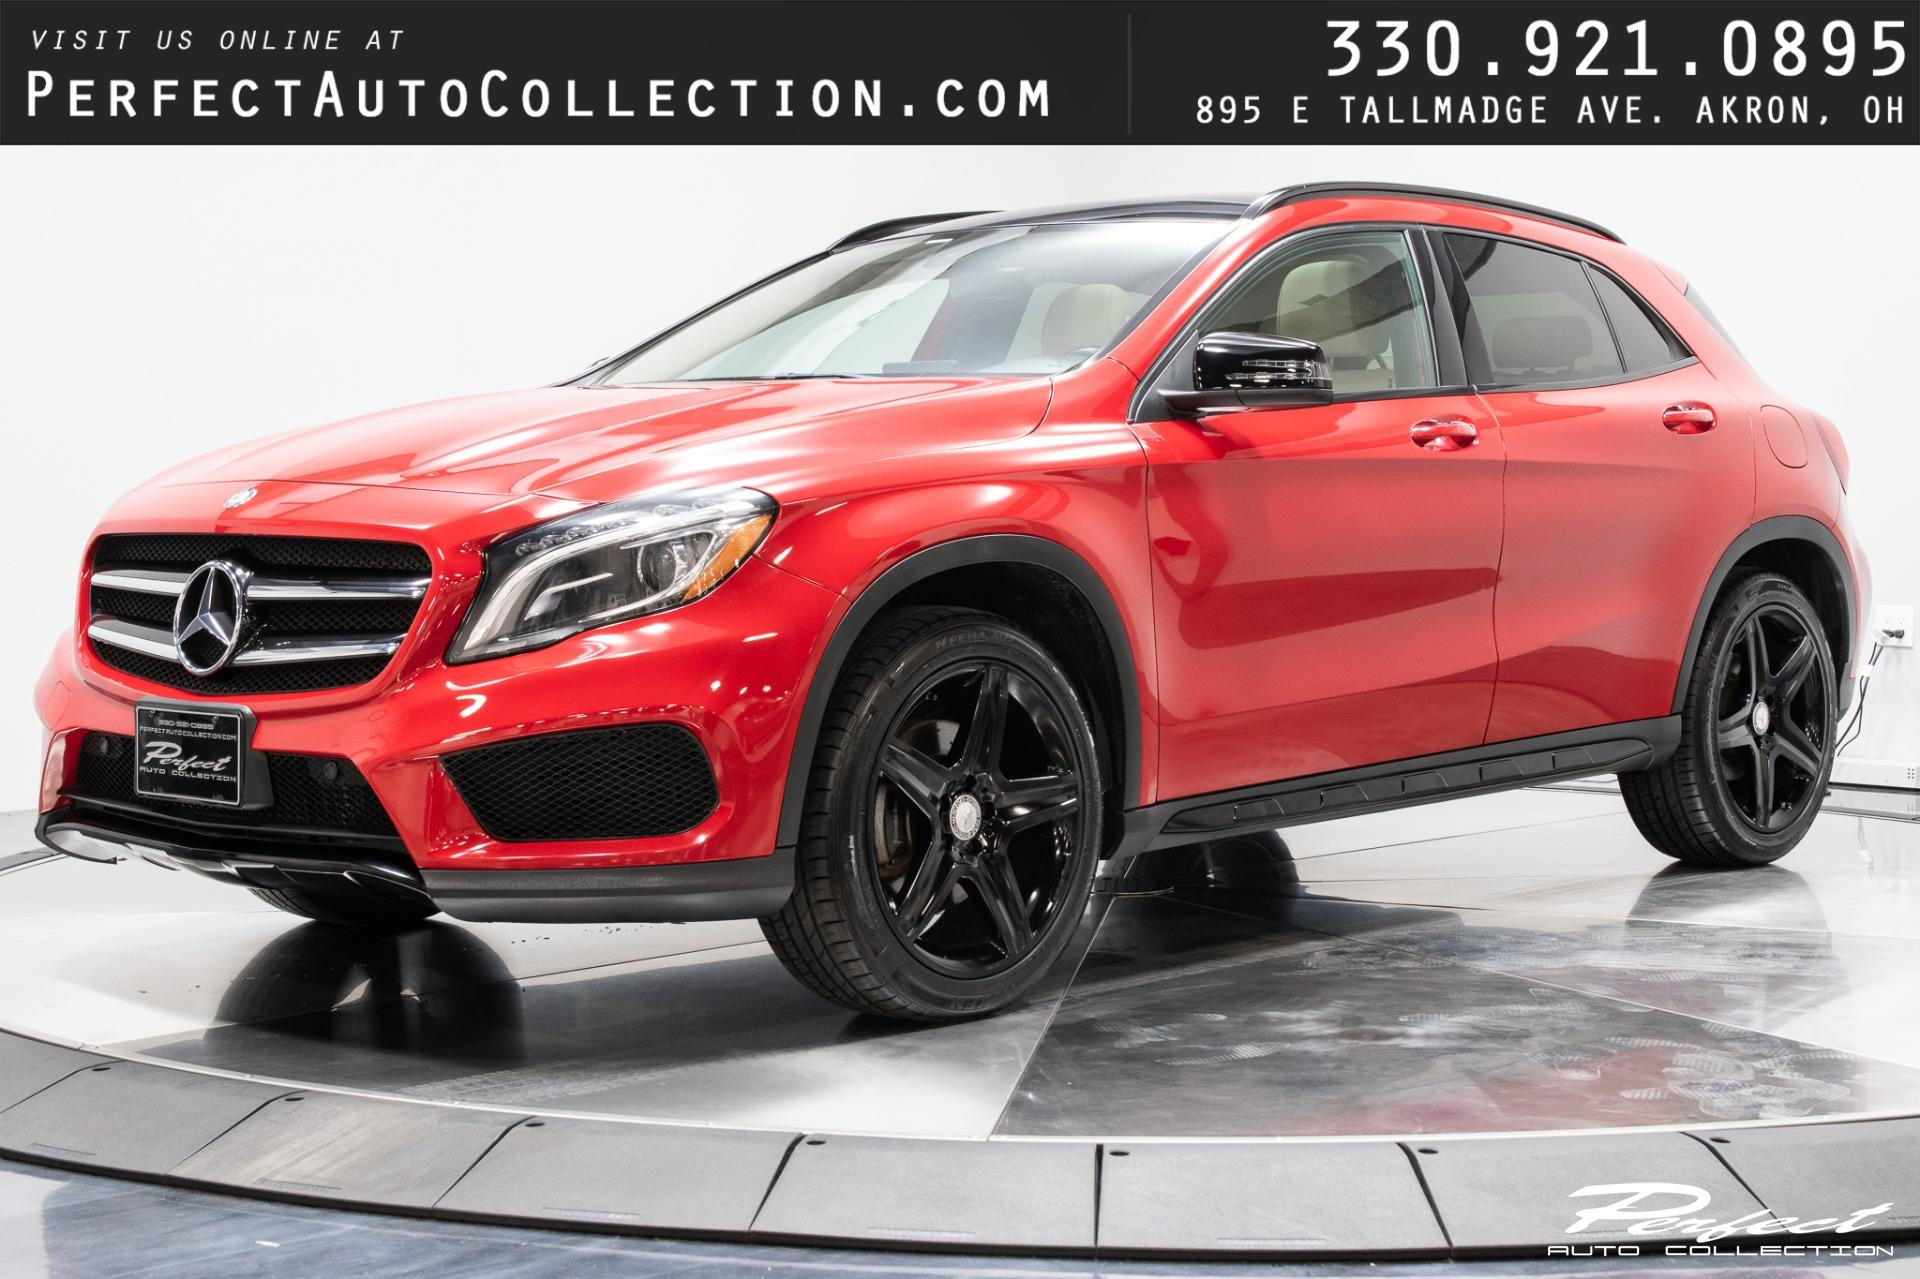 Used 2016 Mercedes-Benz GLA GLA 250 4MATIC for sale $21,993 at Perfect Auto Collection in Akron OH 44310 1